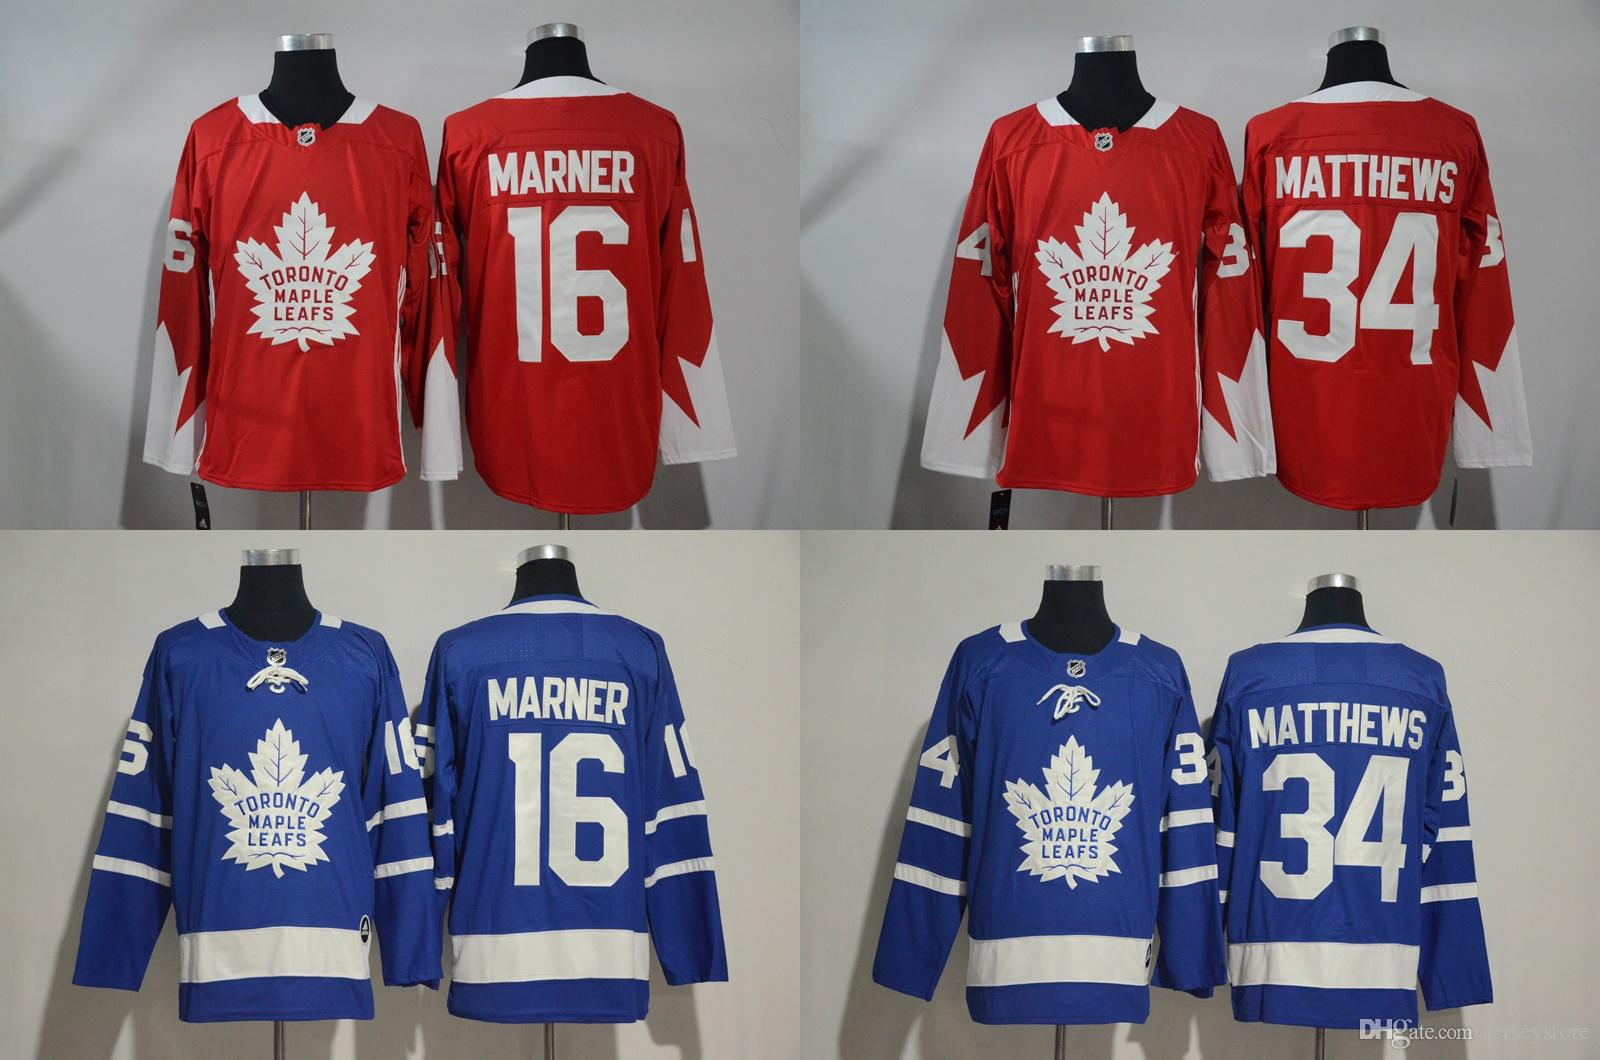 3f159d9de 2019 New 2017 18 Toronto Maple Leafs  34 Auston Matthews Jerseys  16  Mitchell Marner Ice Hockey Jerseys Red Blue Best Stitched Embroideried From  Jerseystore ...